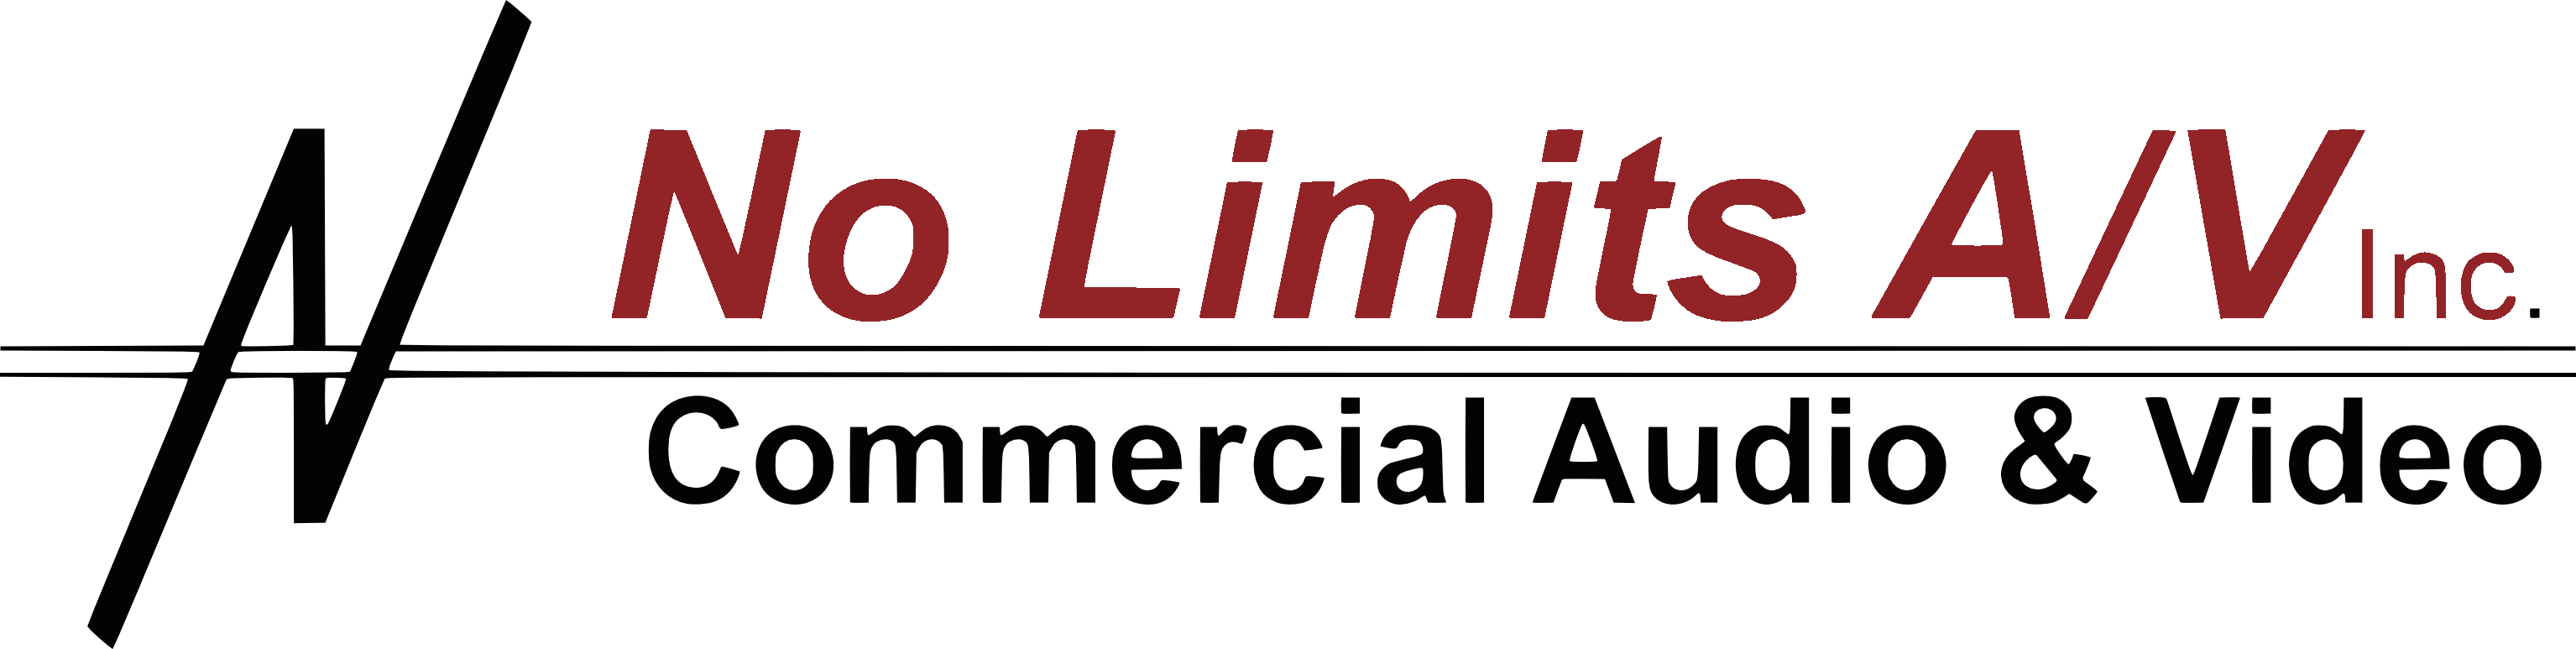 No Limits audio video logo